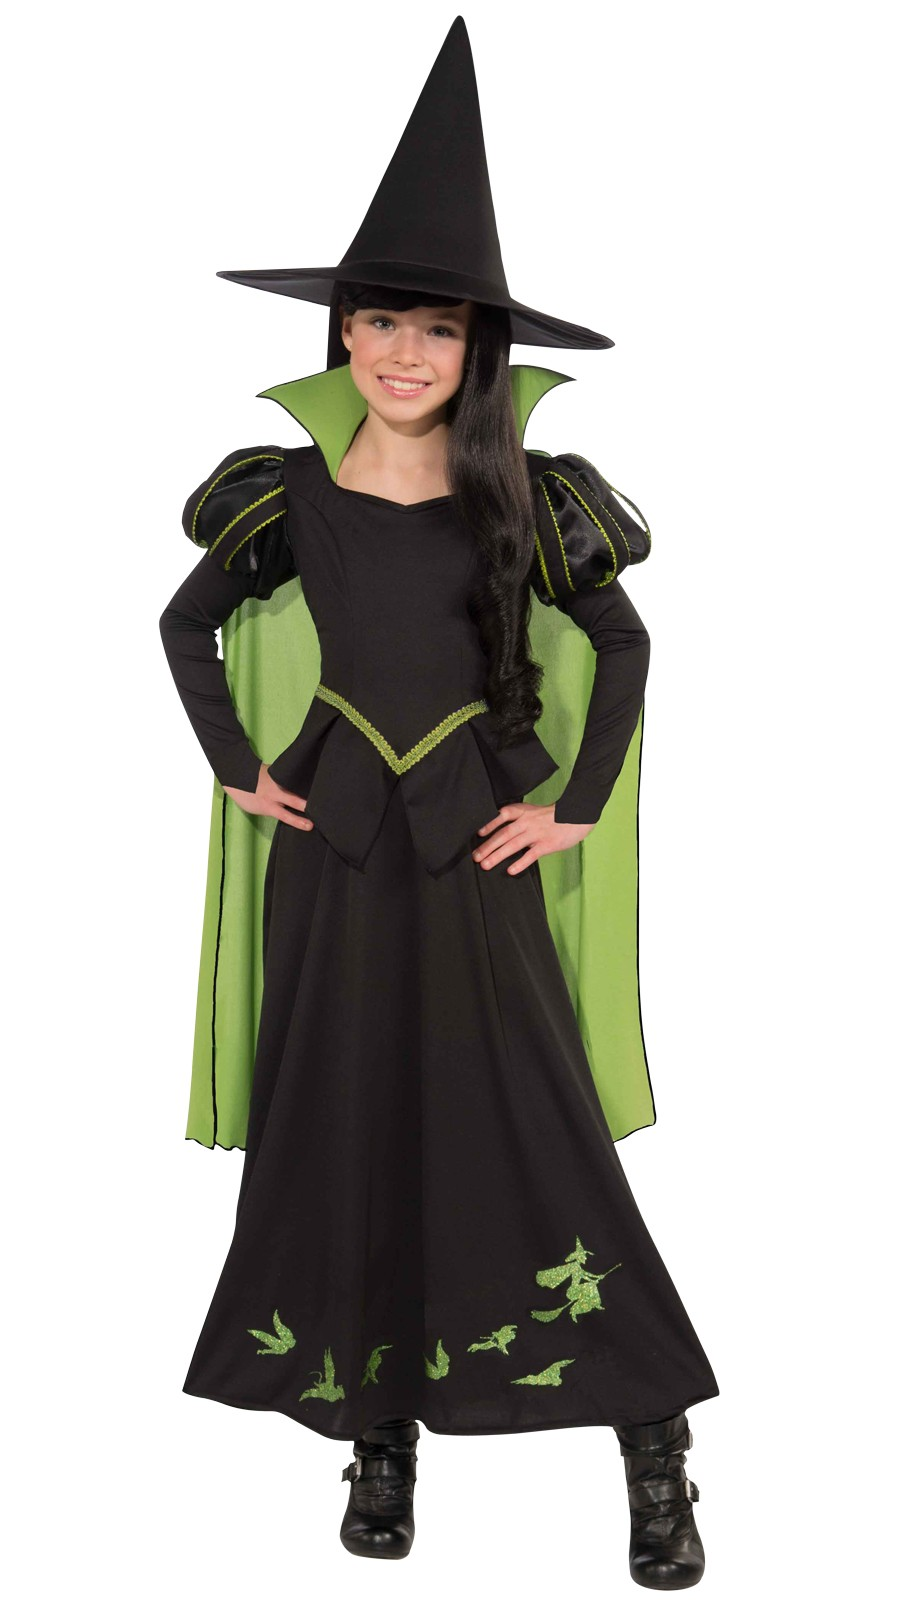 The Wizard of Oz Wicked Witch of the West Child Girlu0027s Costume.jpg  sc 1 st  Costumes.com.au & The Wizard of Oz Wicked Witch of the West Child Girlu0027s Costume ...